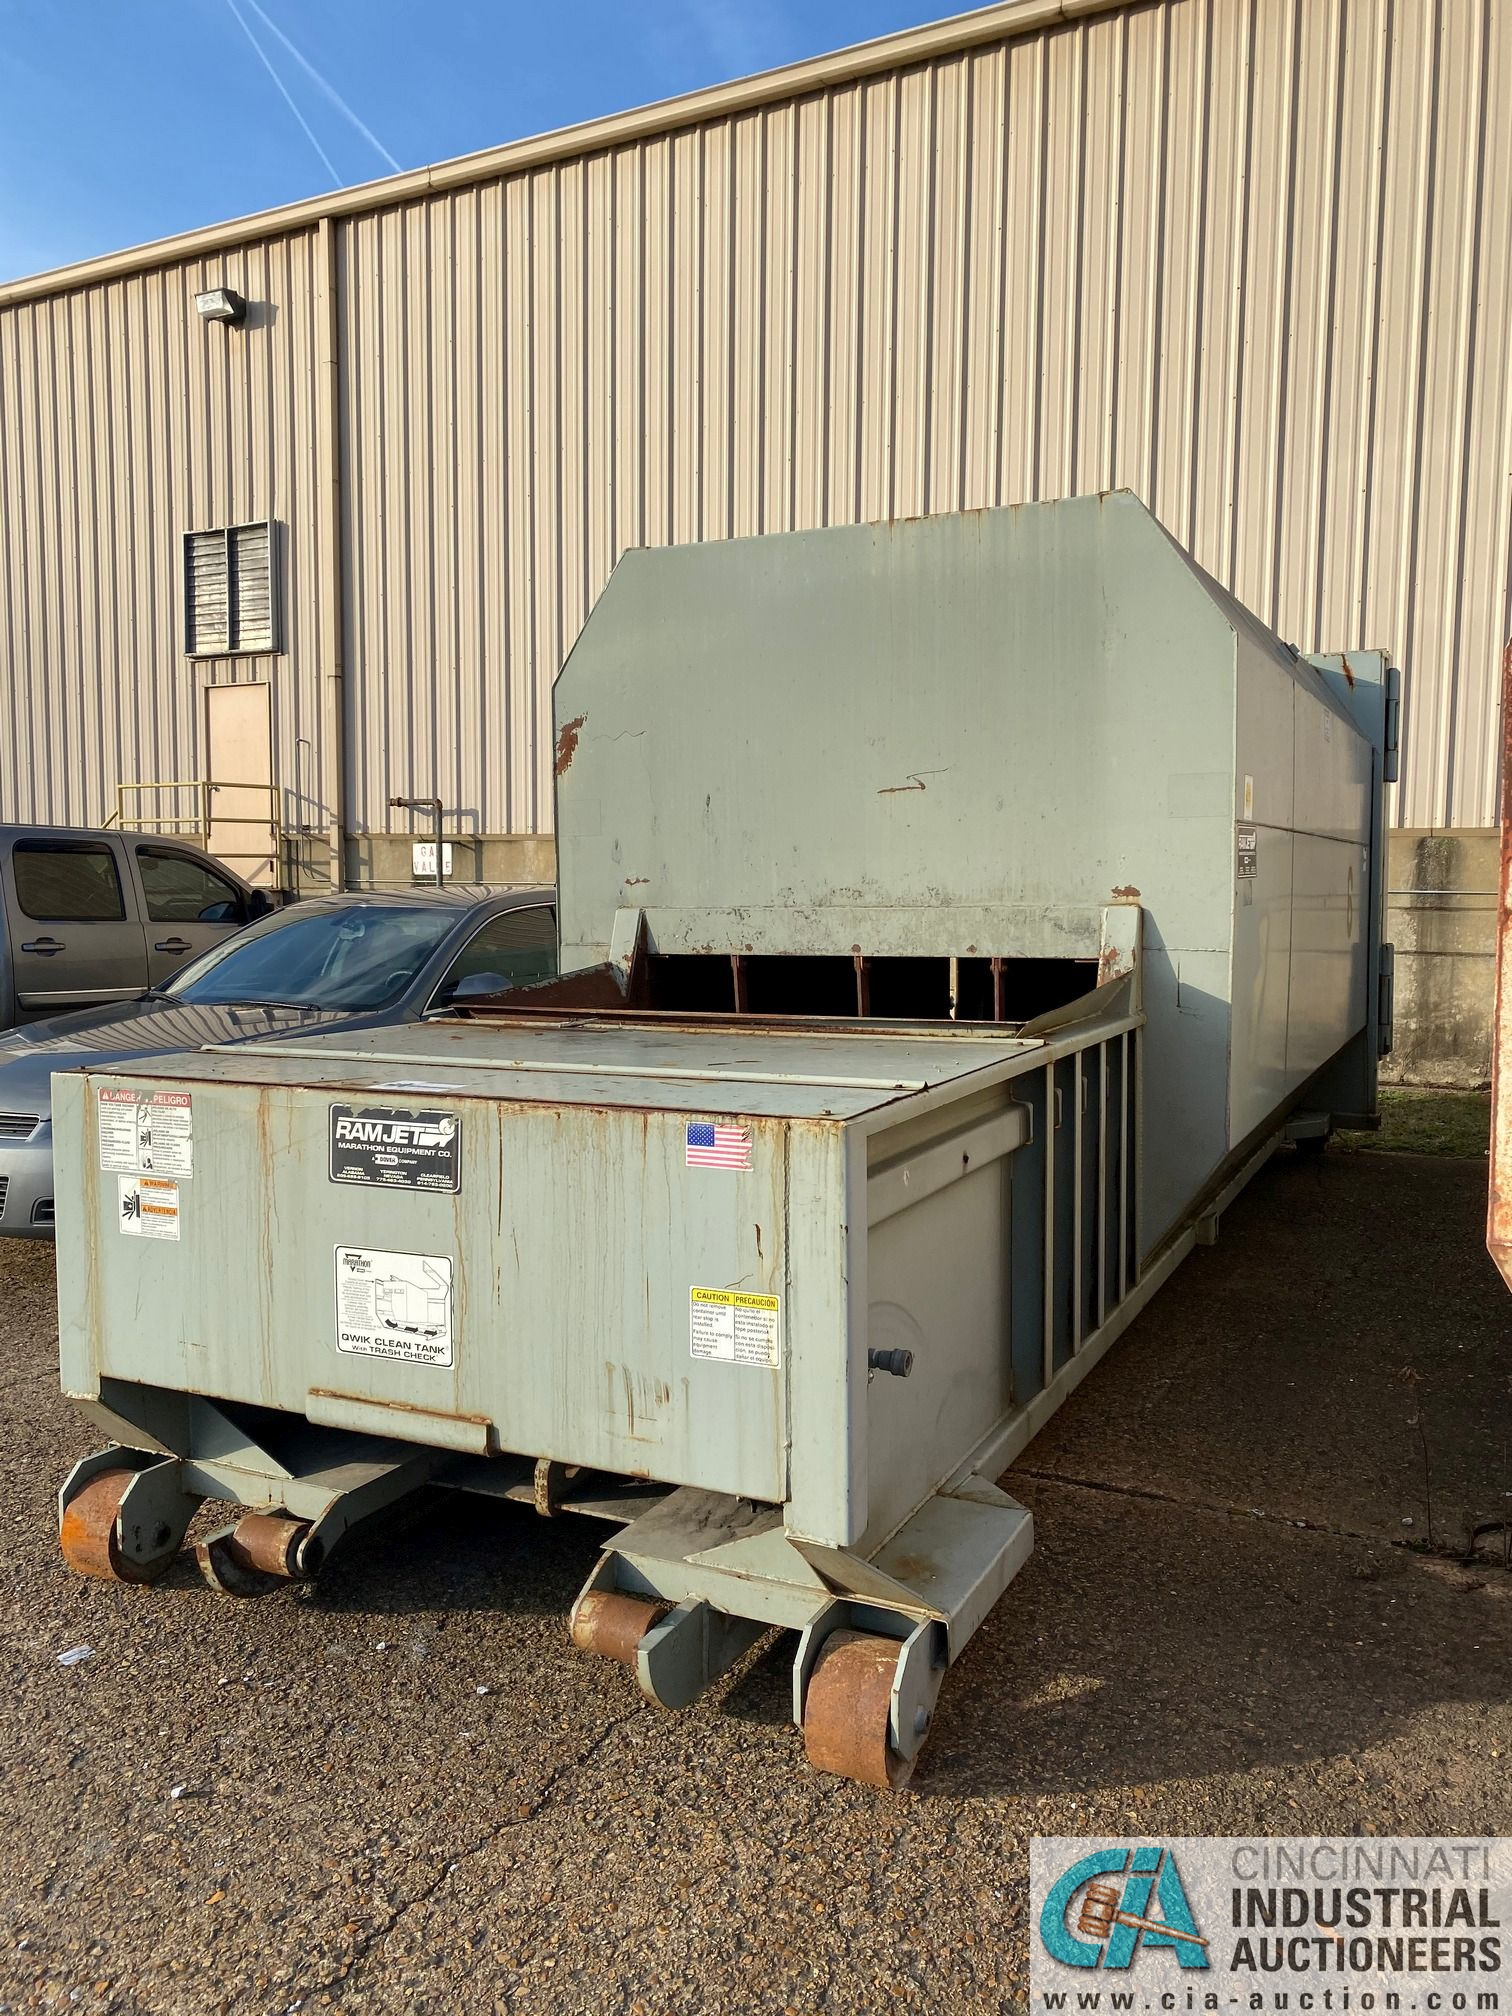 30 YD MARATHON MODEL RJ100-SC-30YD SELF-CONTAINED COMPACTOR/ CONTAINER; S/N 2228709 (2009) 45,200 LB - Image 2 of 7